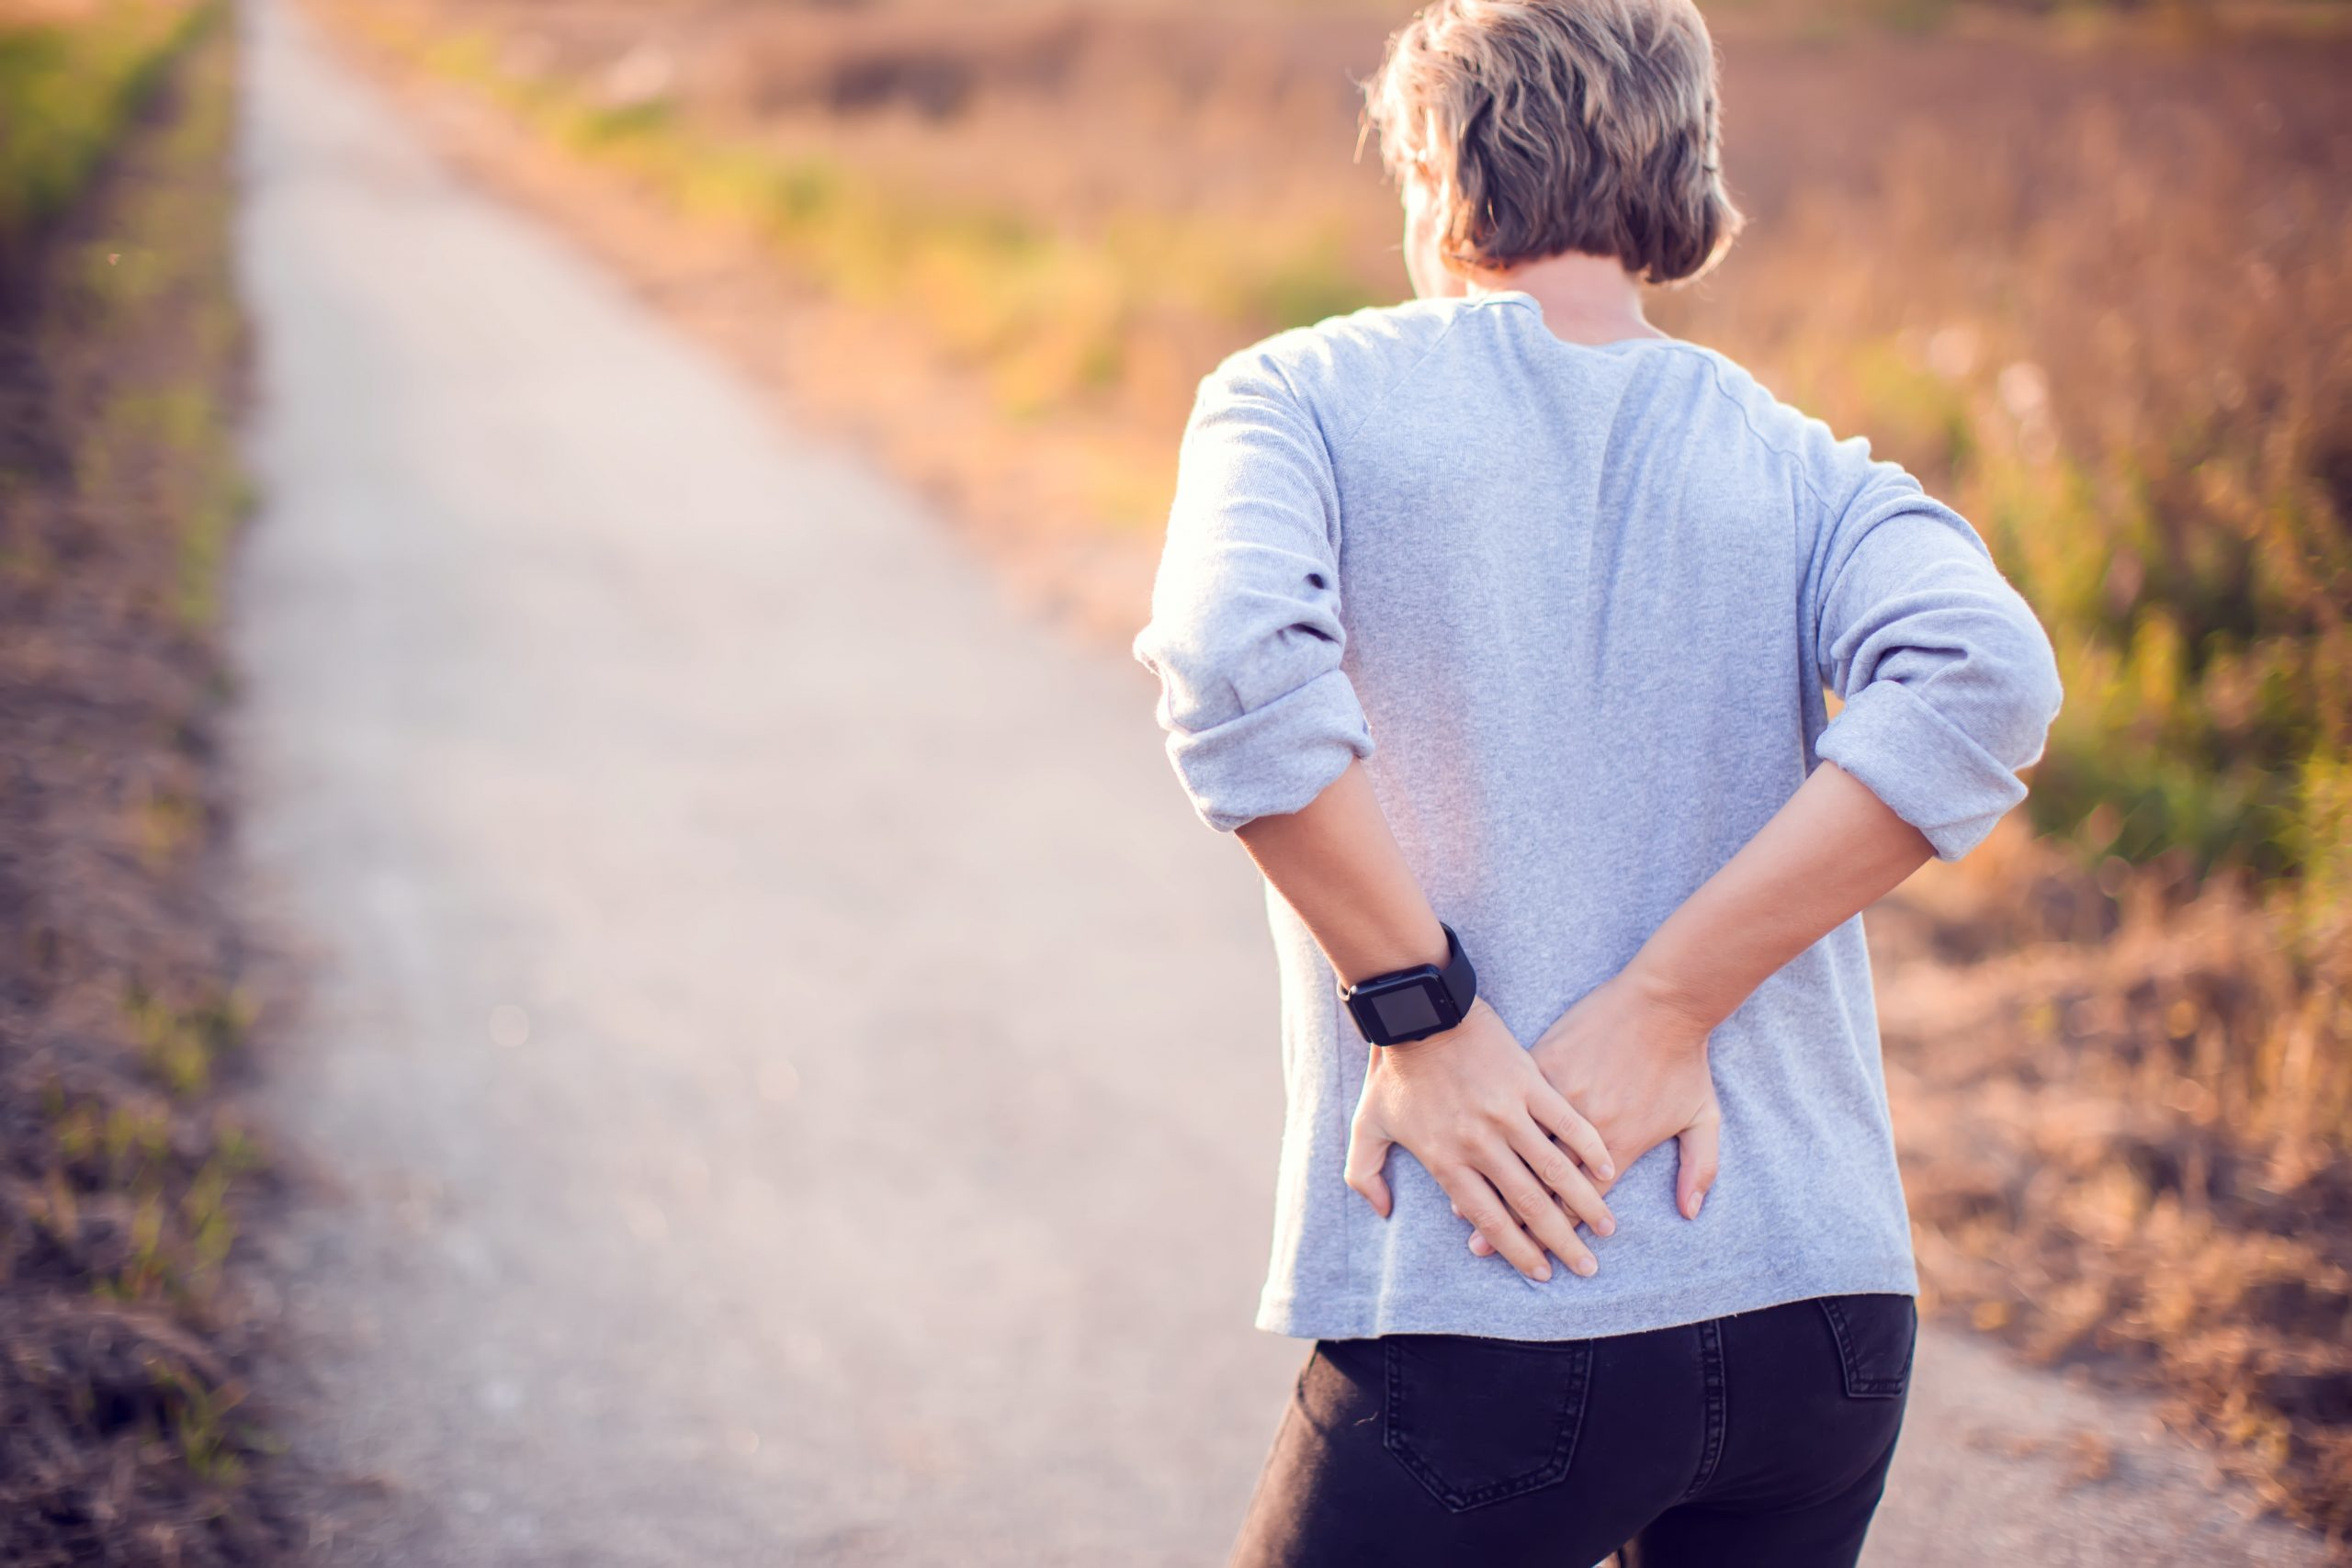 Relief of pain is the main benefit of hip replacement surgery.